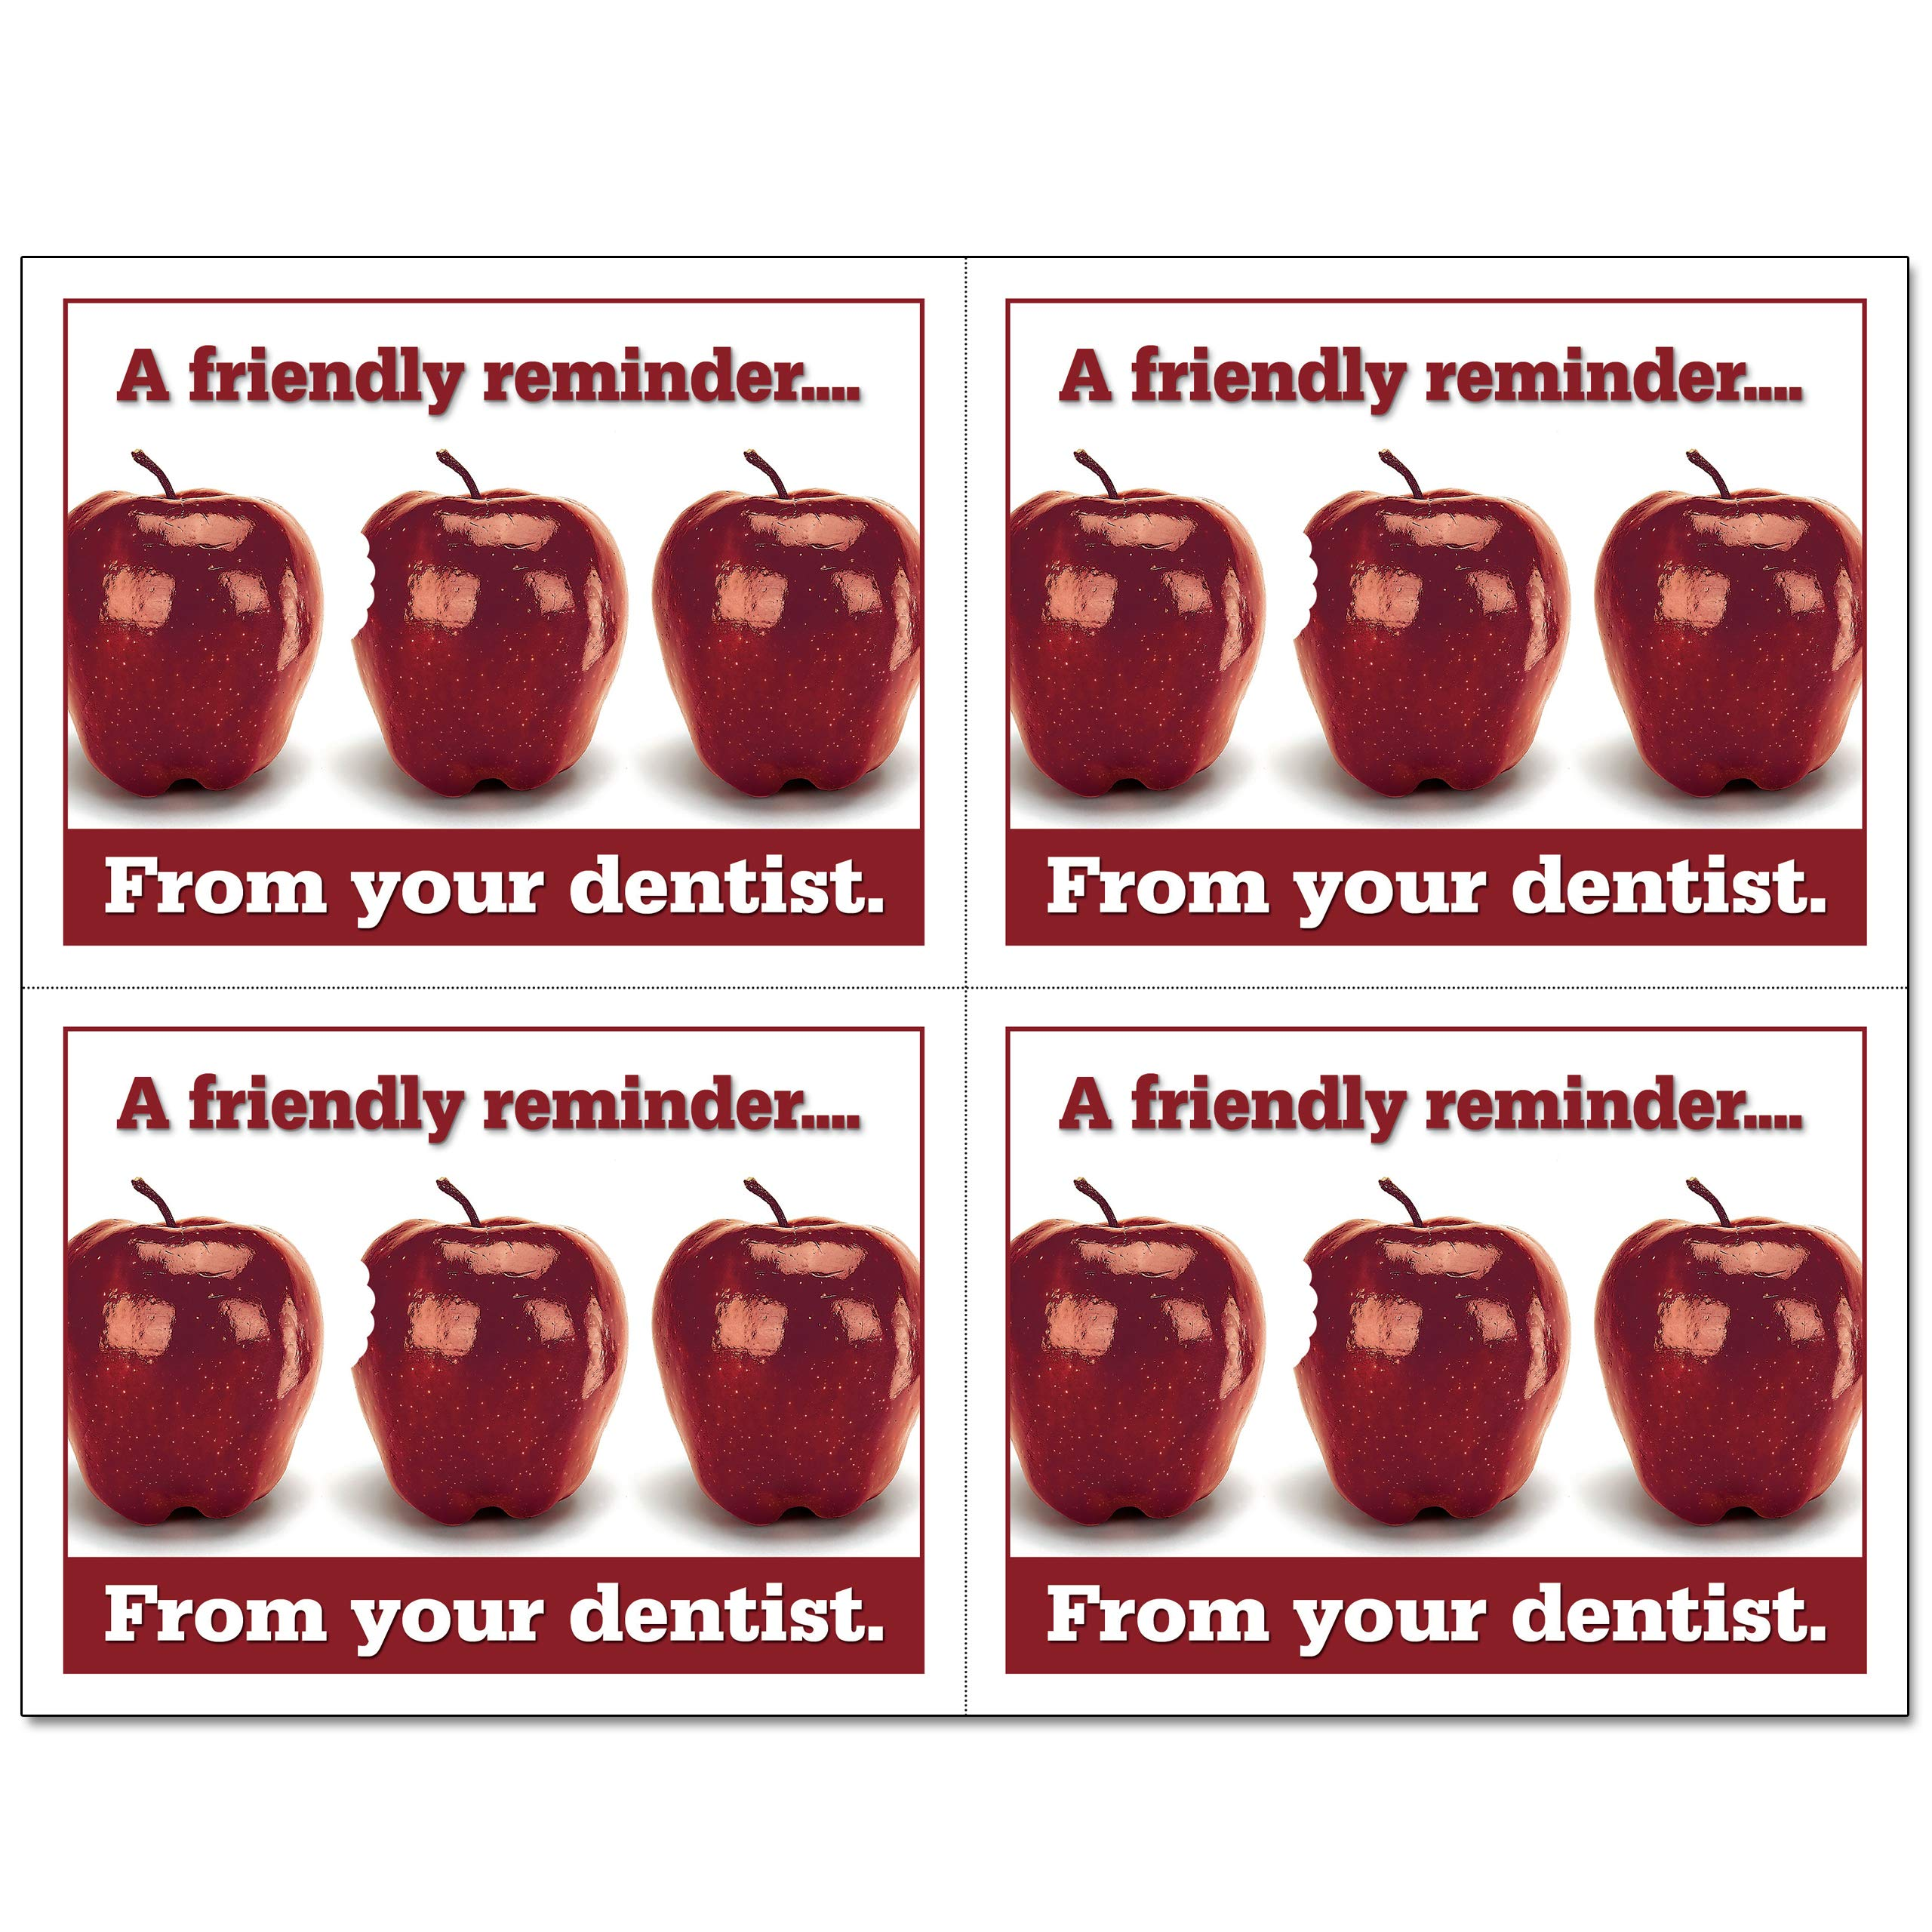 Laser Reminder Postcards, Dental Appointment Reminder Postcards. 4 Cards Perforated for Tear-Off at 4.25'' x 5.5'' on an 8.5'' x 11'' Sheet of 8 Pt Card Stock. DEN106-LZS (5000) by Custom Recall (Image #2)